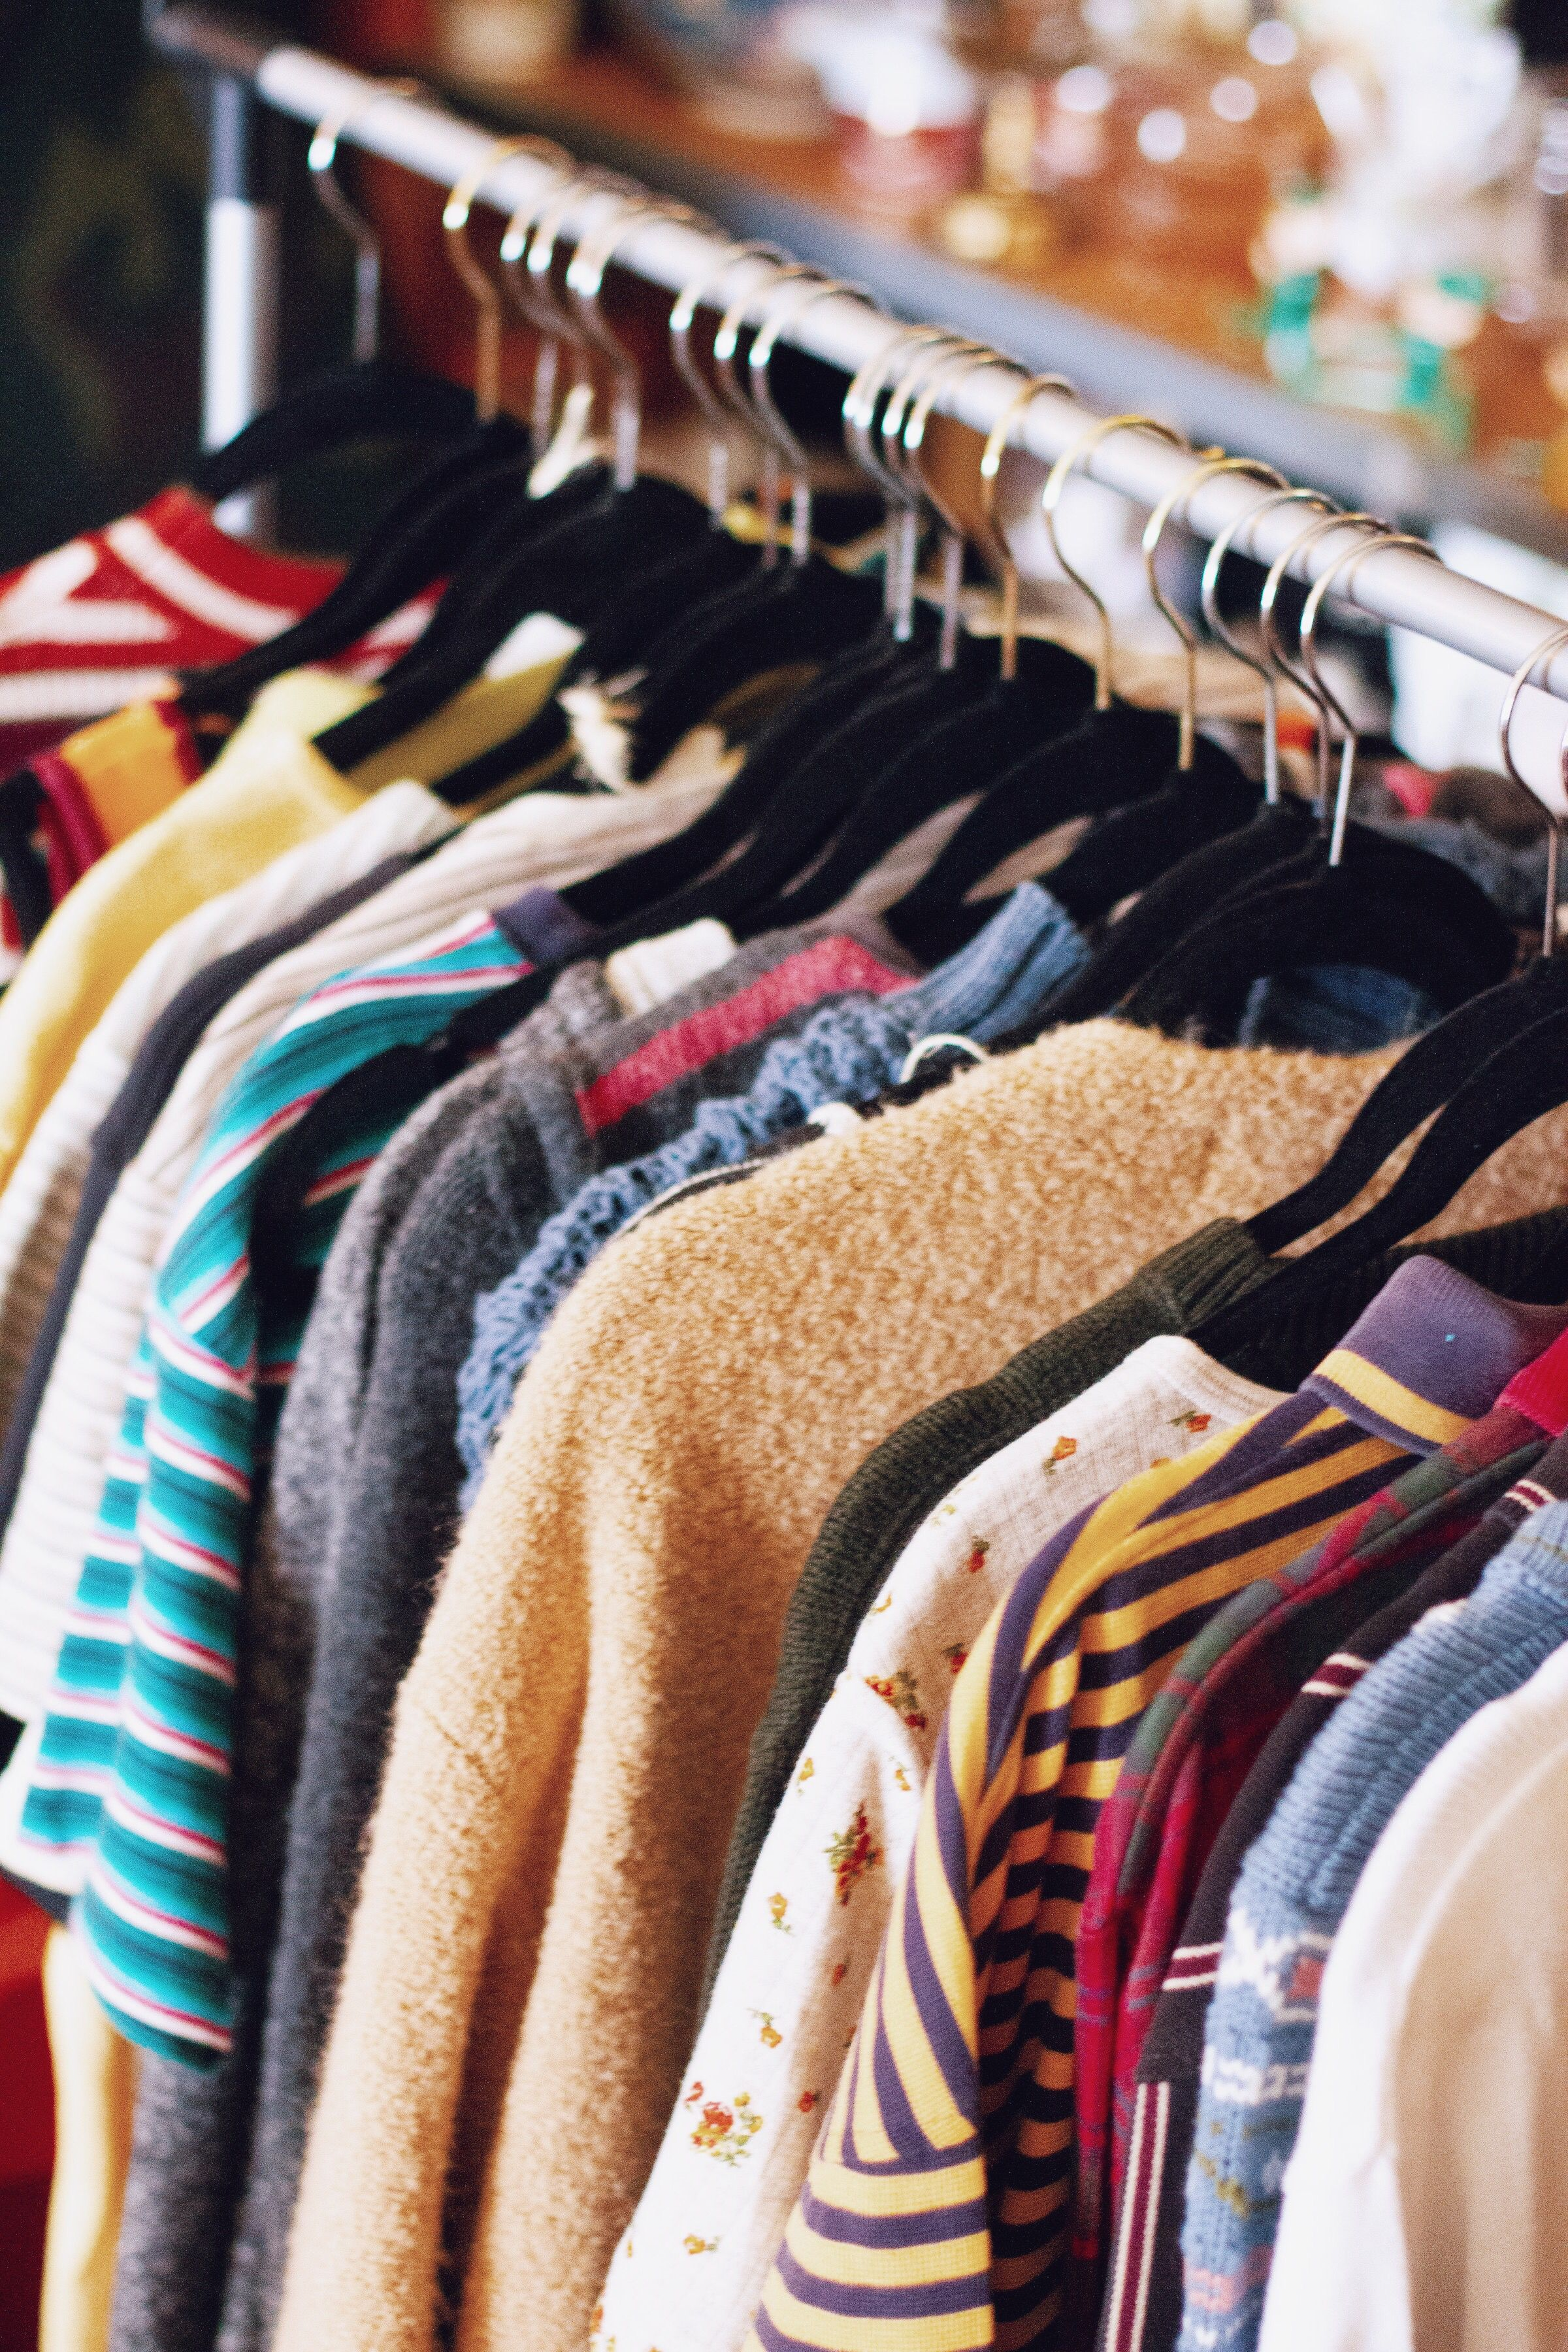 Vella Vintage Is An Online Second Hand And Vintage Clothing Store